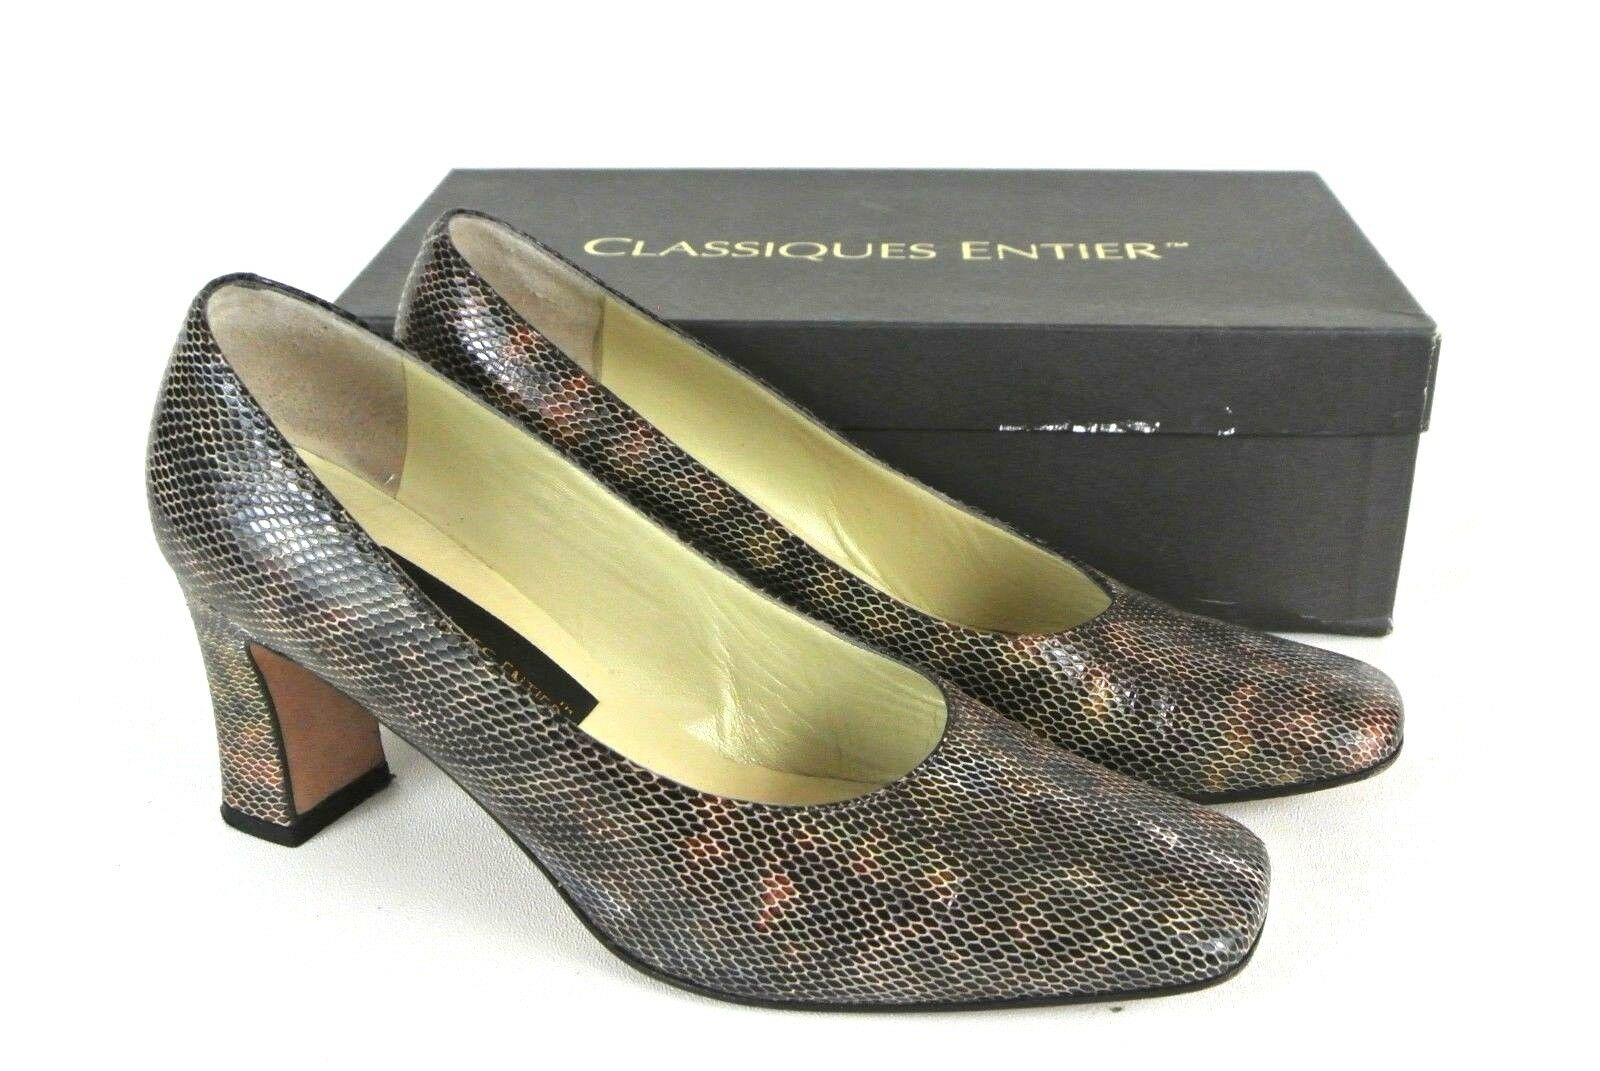 CLASSIQUES ENTIER Donna Snakeskin Leather Pumps 8.5M Wear *1008 To Work Slip On *1008 Wear 2e81f4